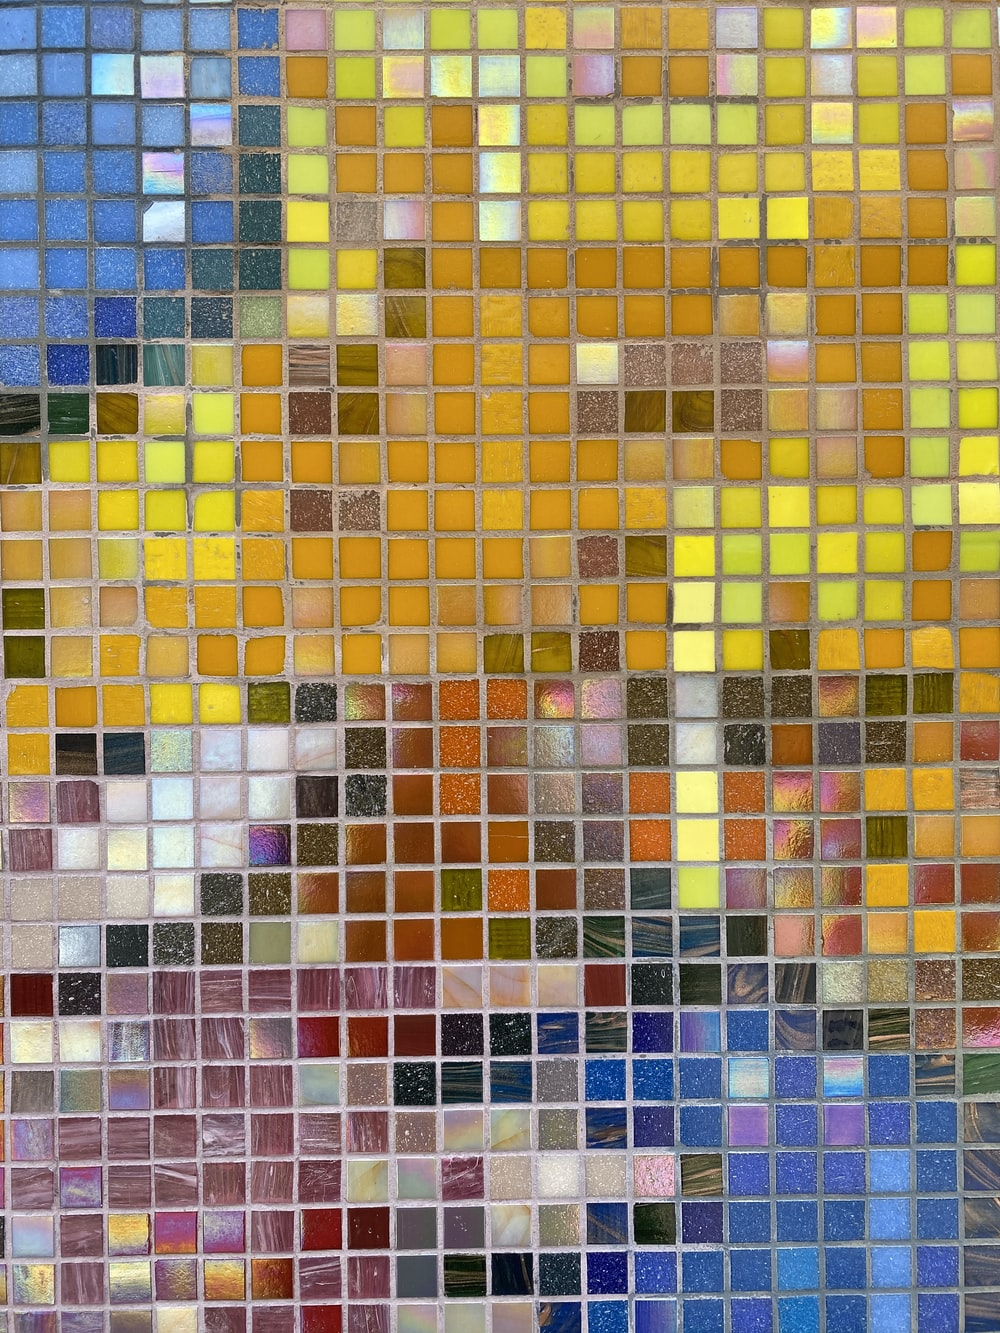 yellow blue and white tiles